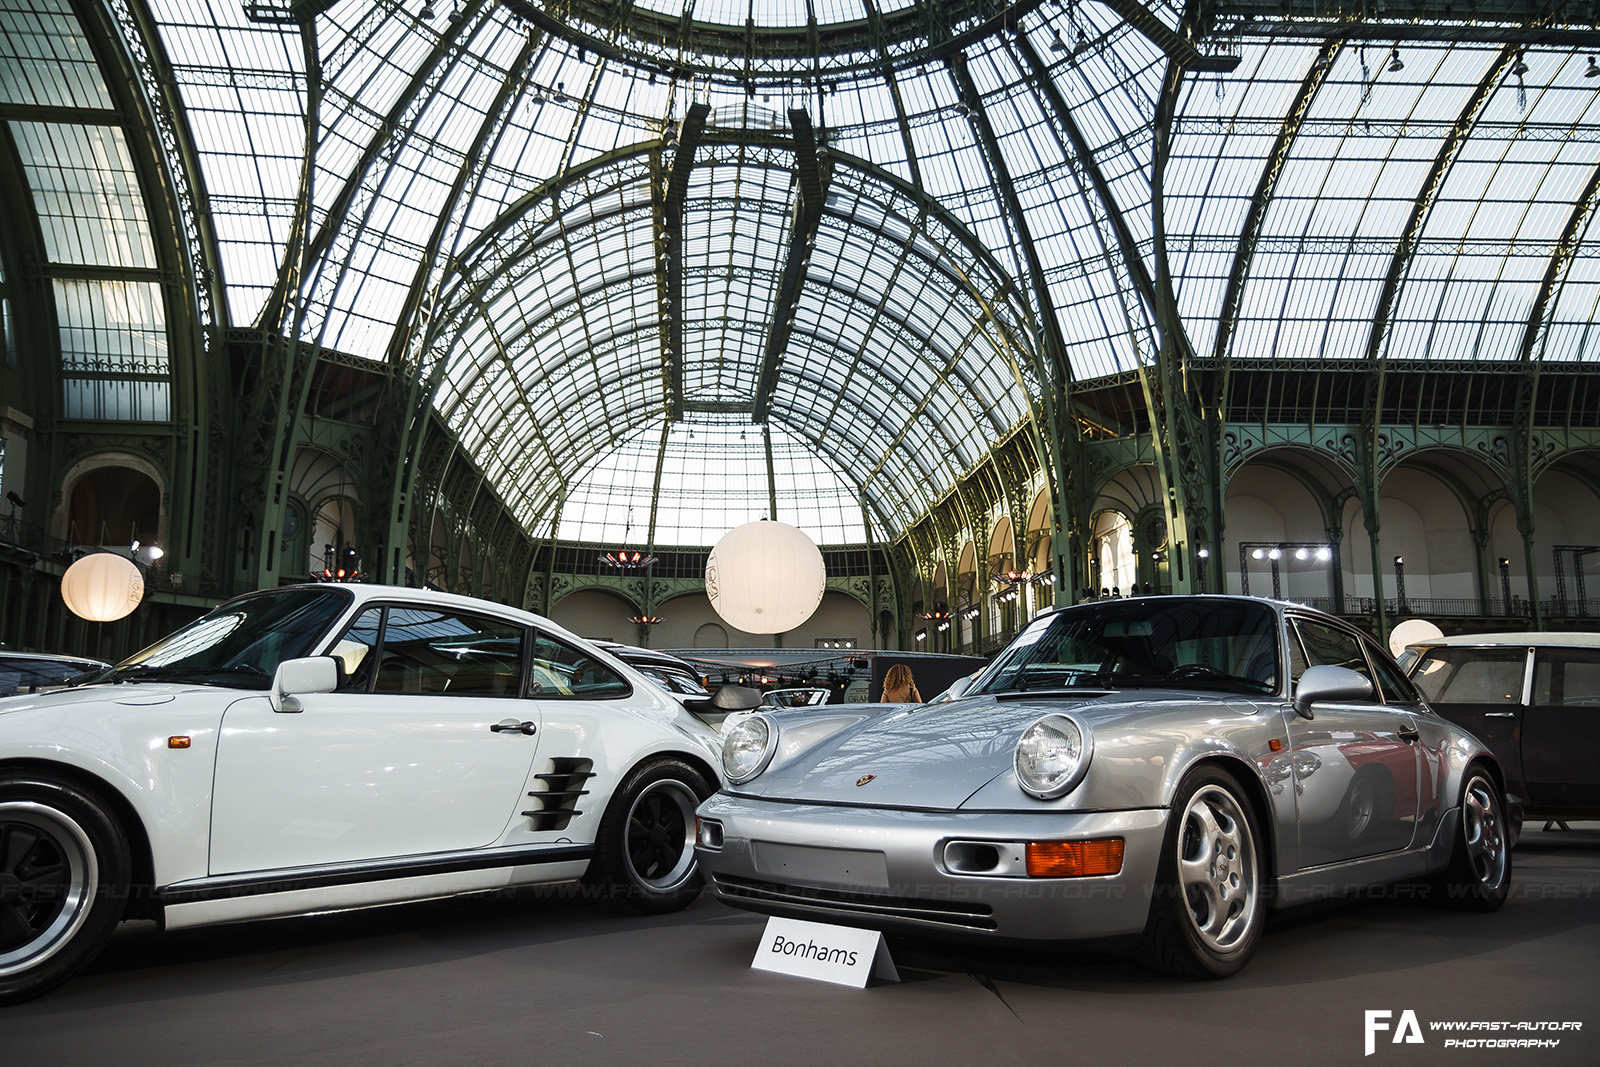 vente-encheres-bonhams-paris-2015-reportage-photo